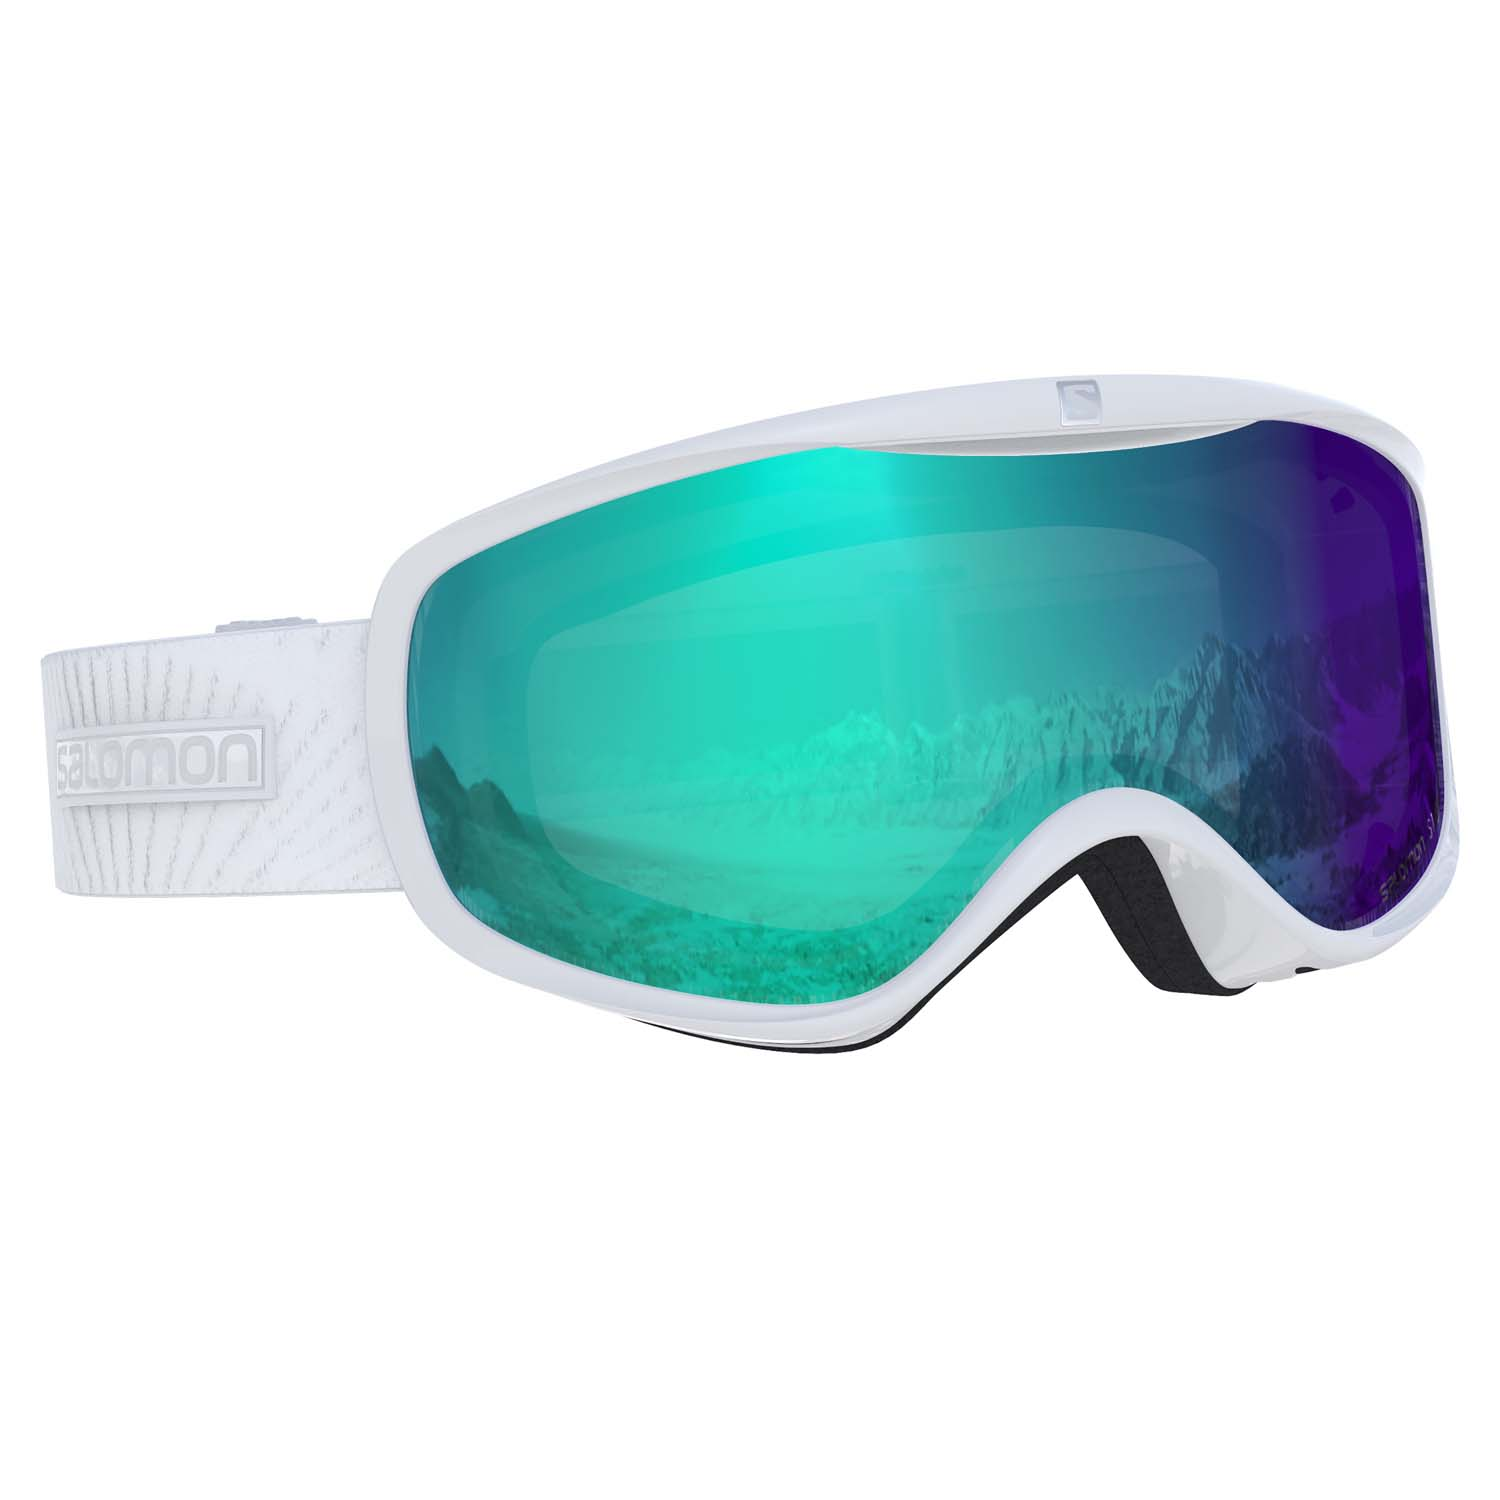 Salomon Sense Photo Goggle White/All Weather Blue Lens 2020